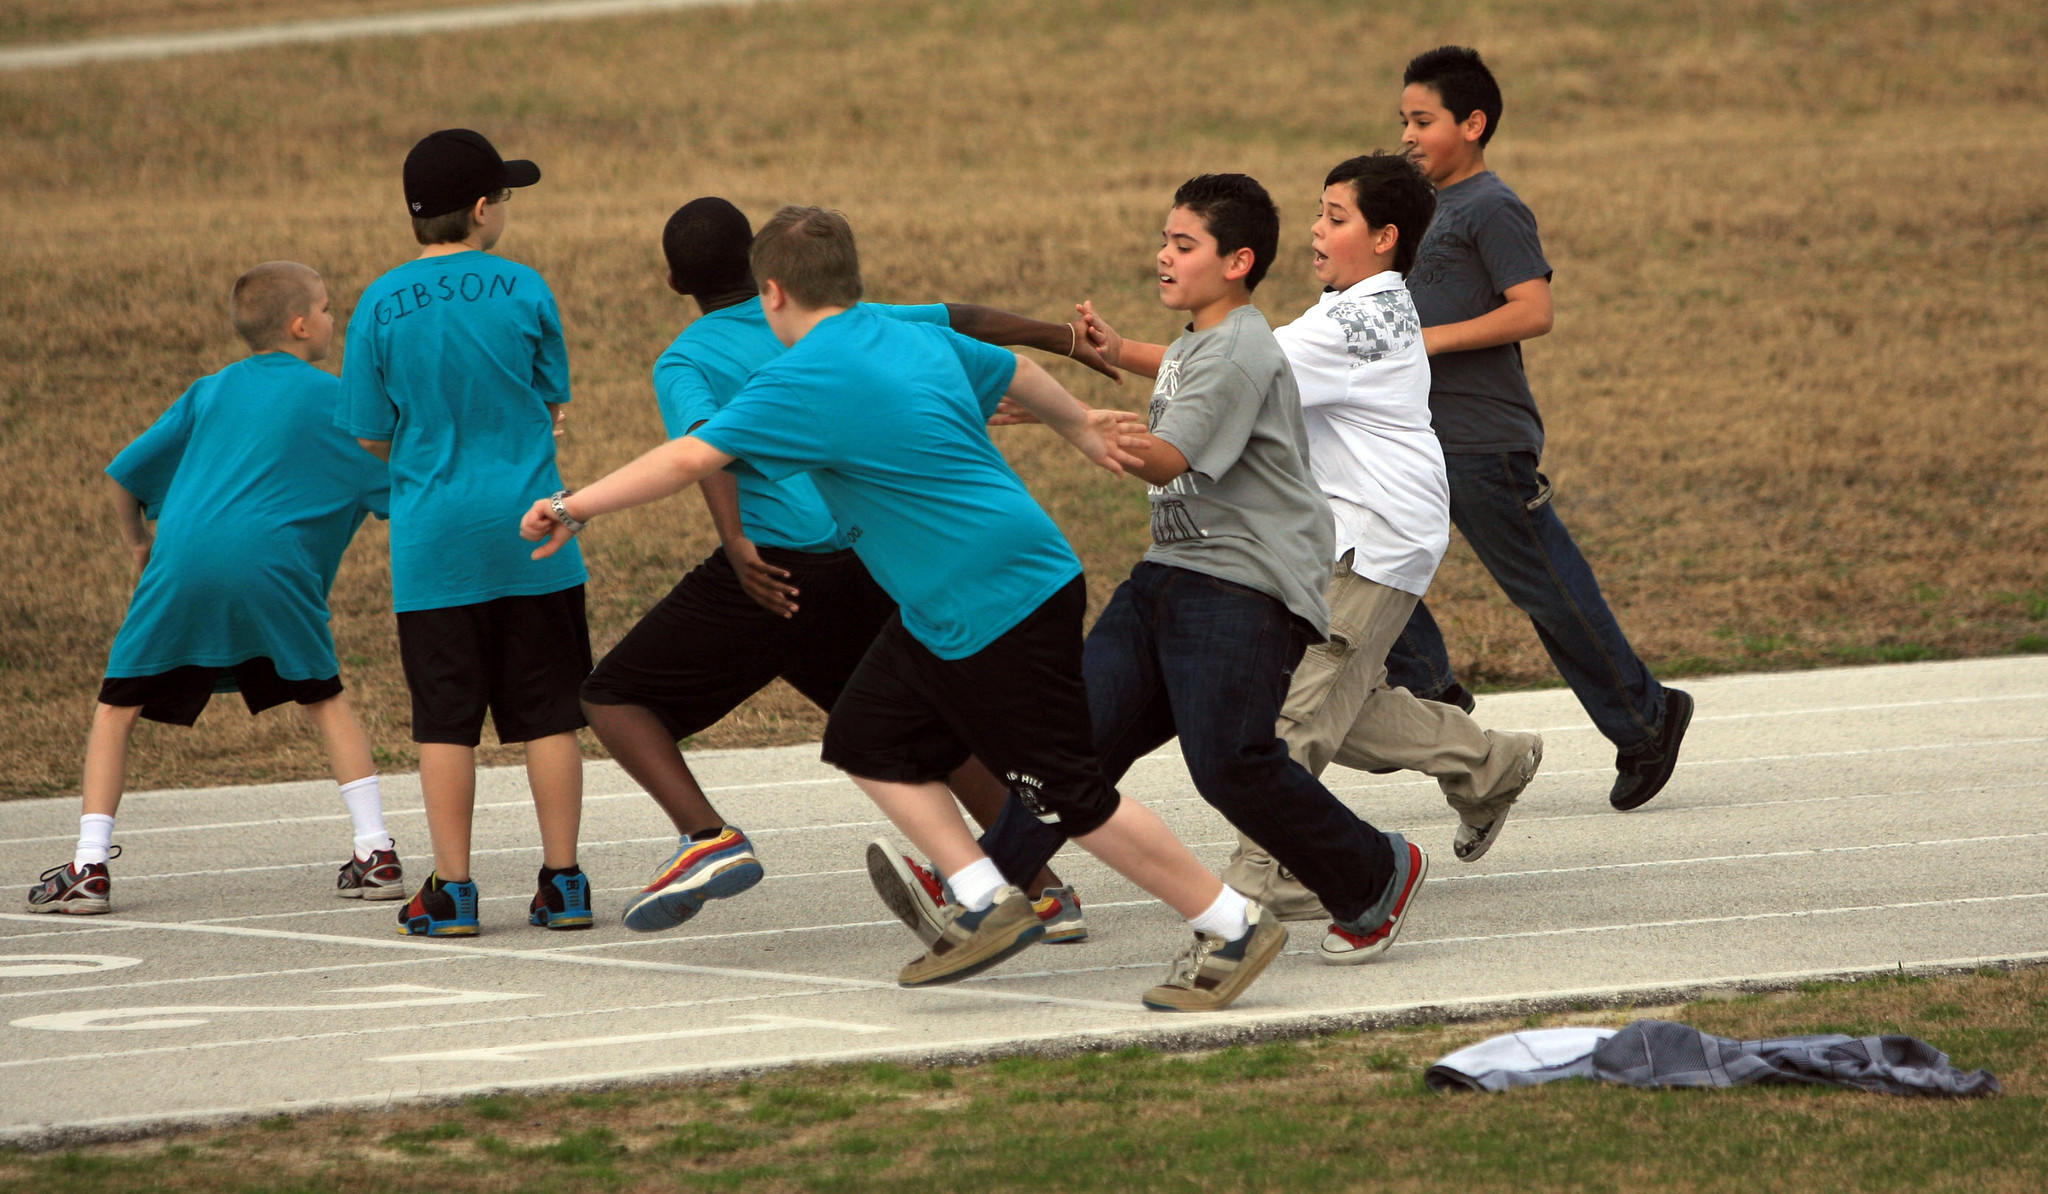 Sixth graders do a relay race during their physical-education class at Windy Hill Middle in Clermont in January 2010.